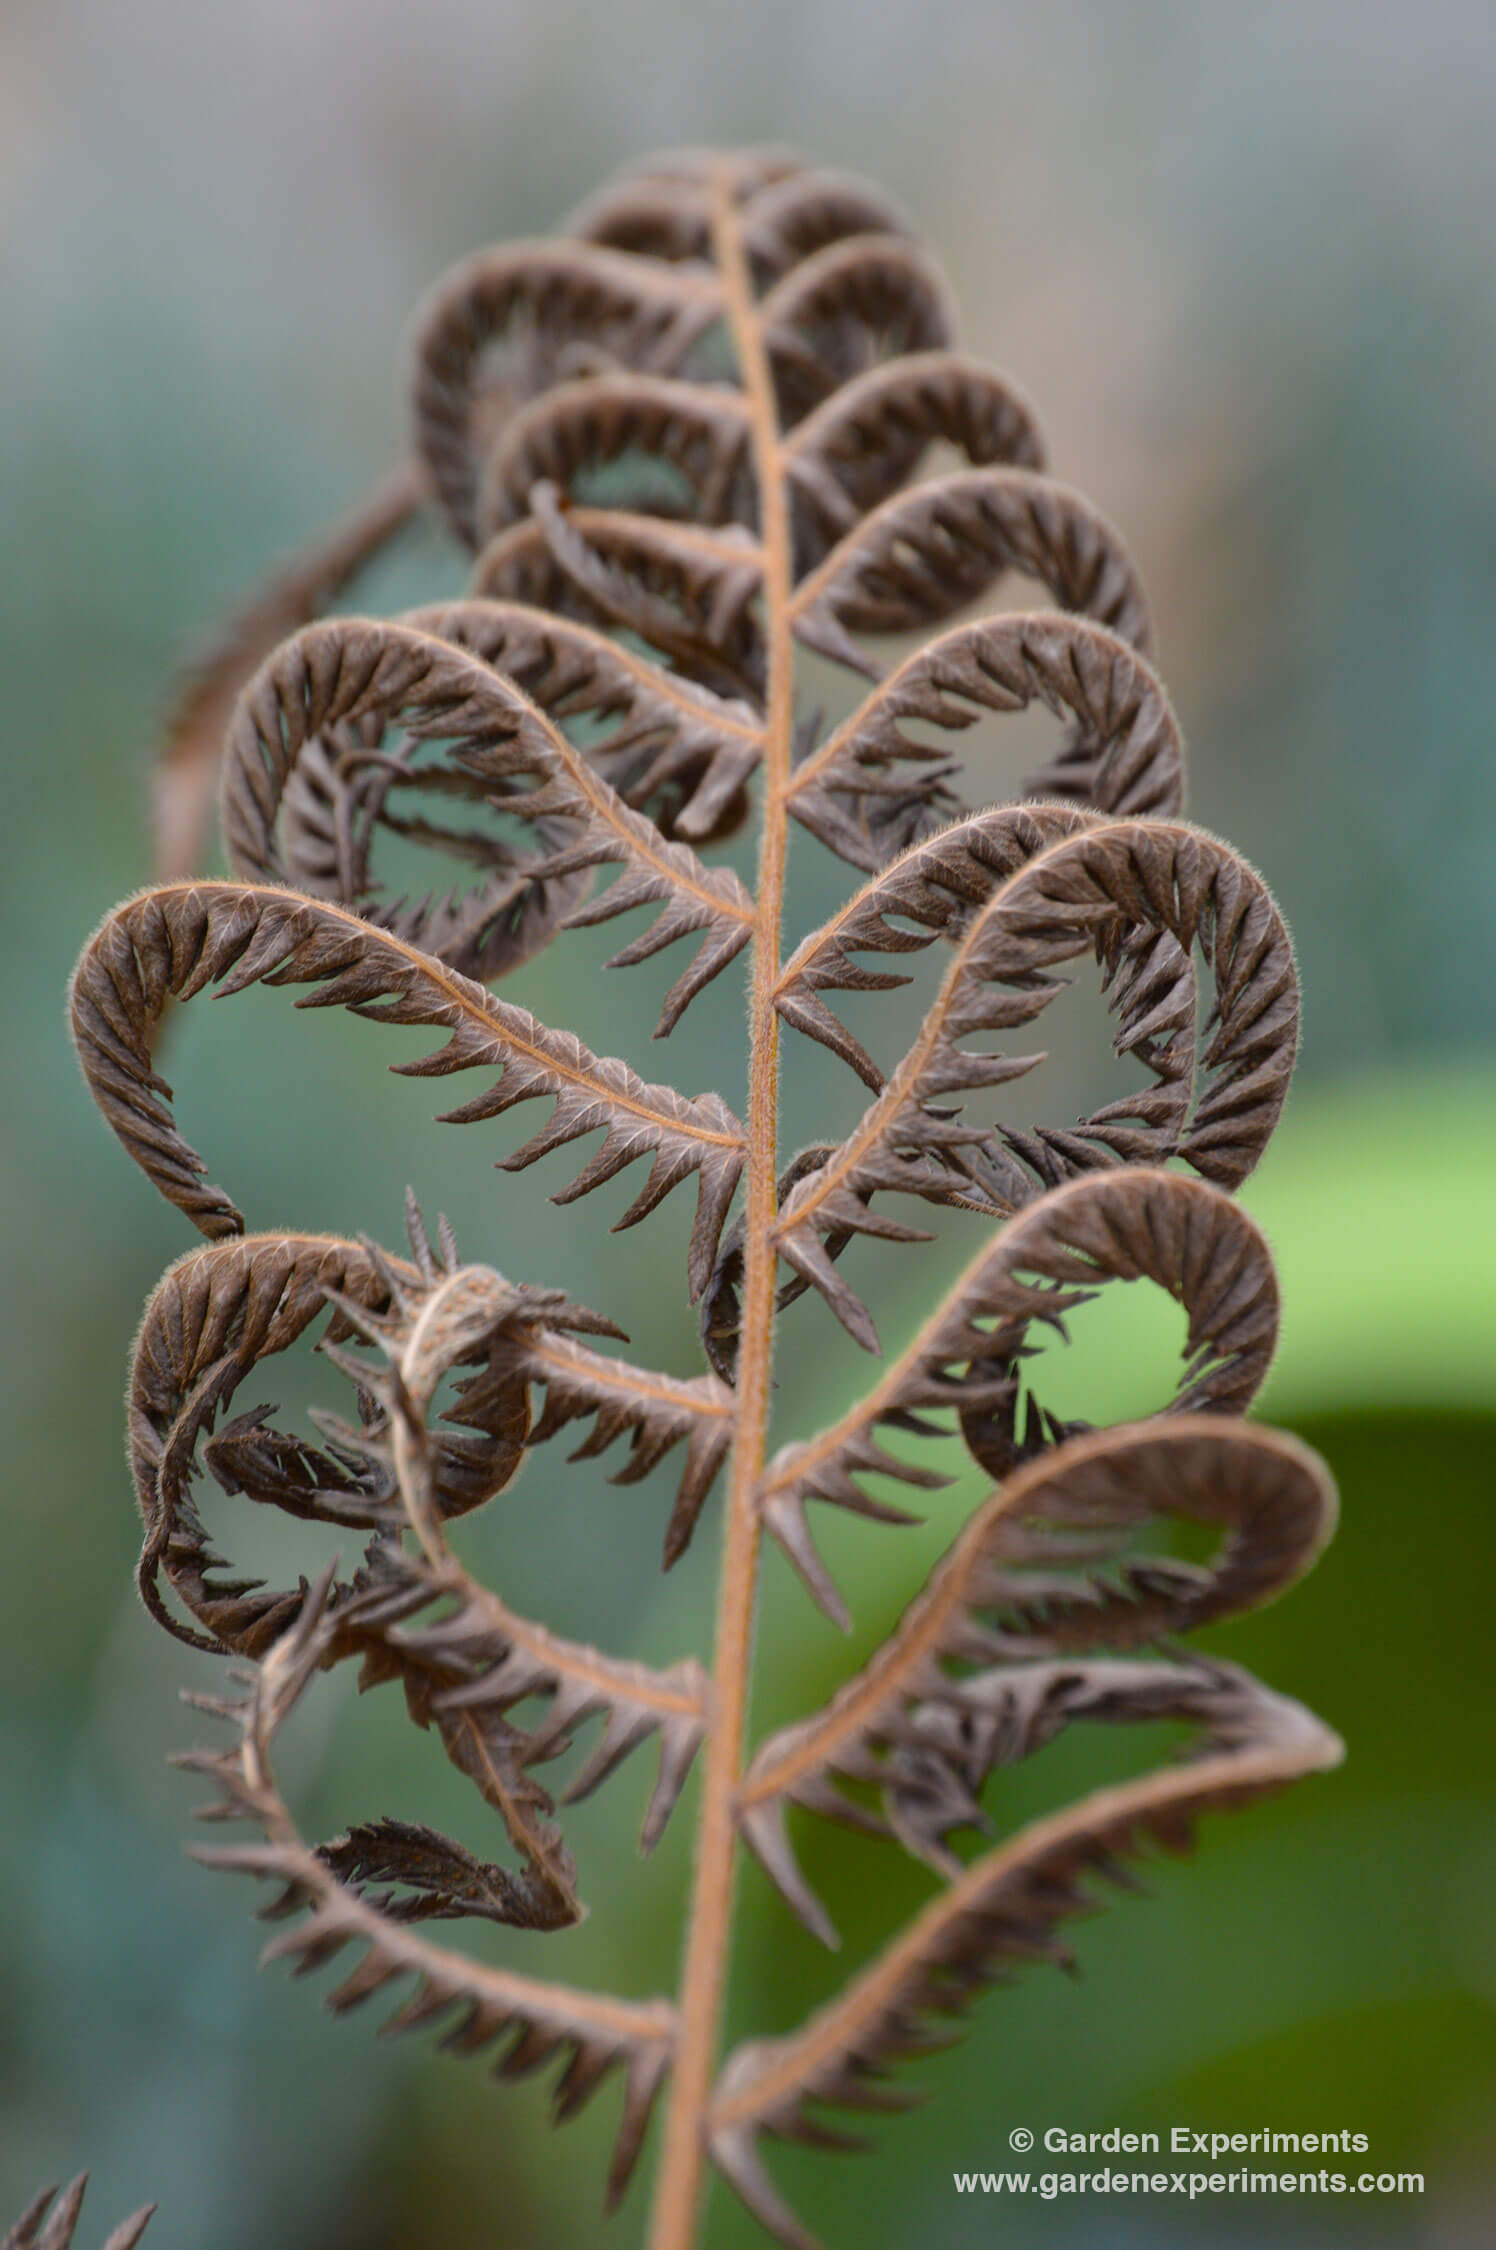 The Beauty of Decay in the Winter Garden - winter makes amazing patterns in the leaves and flowers that it leaves.